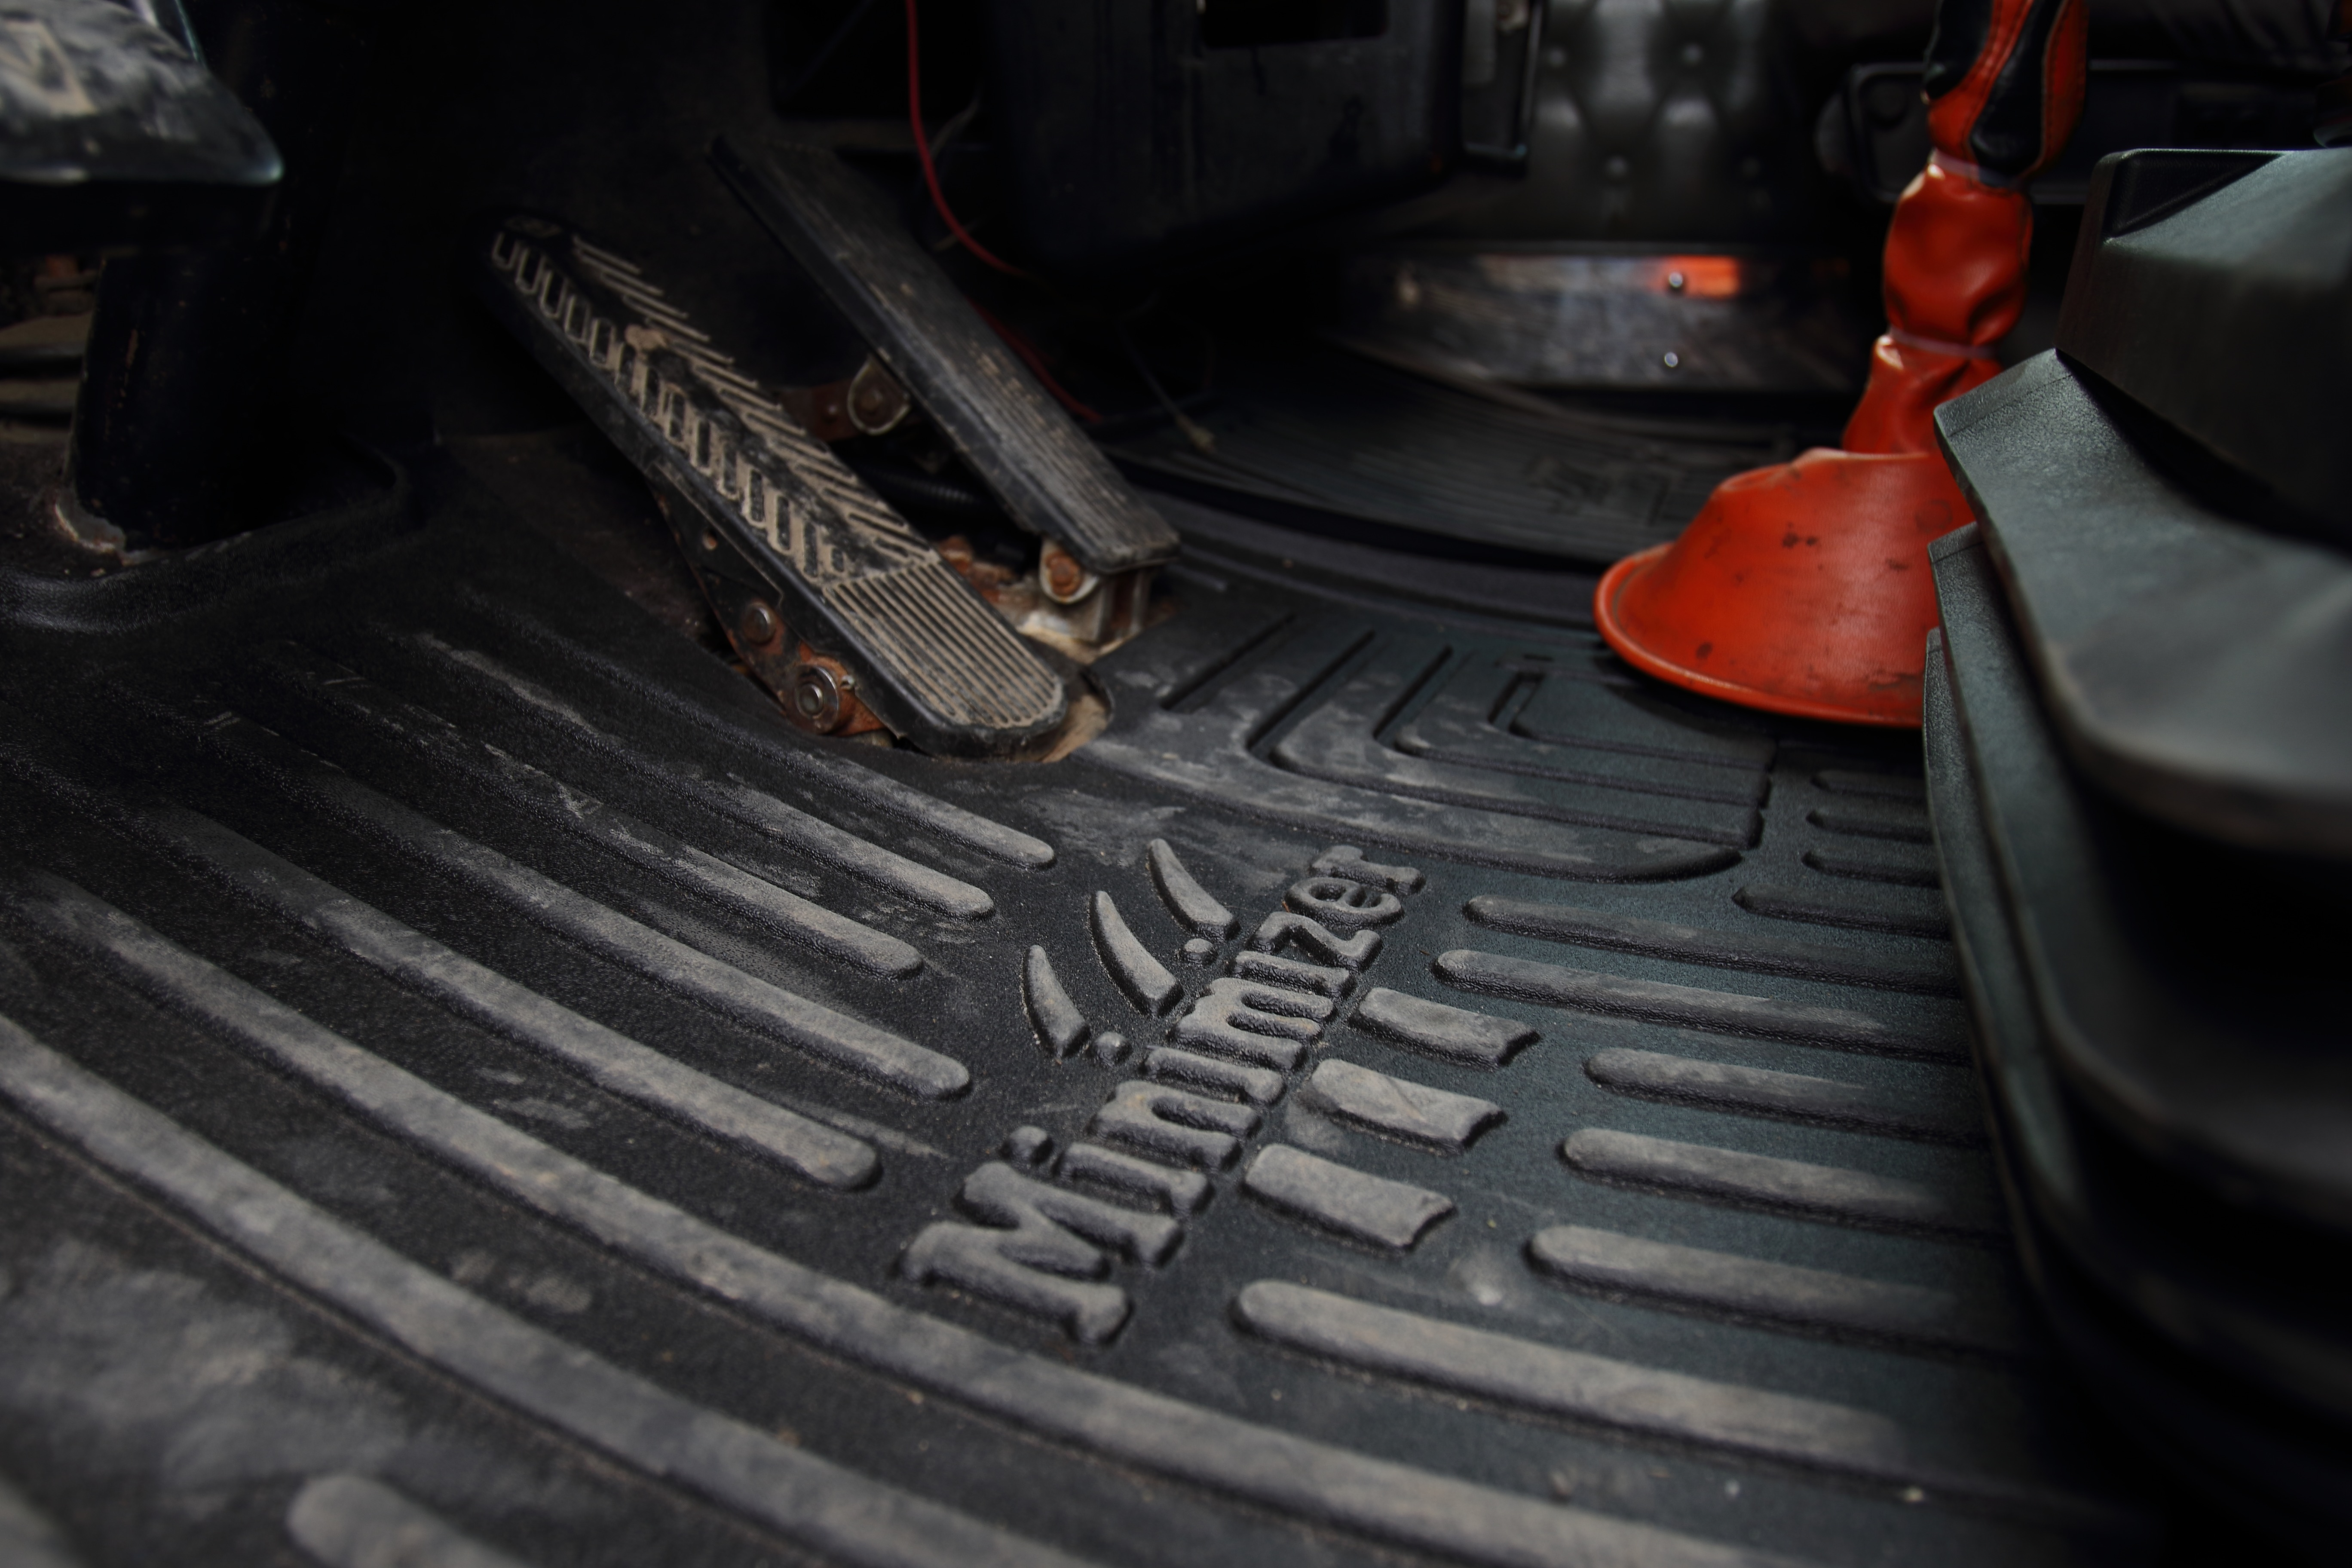 mud and custom minimizer k build materials white flaps truck bandit accessories industries uses lasting mats to durable long processes products proprietary floor home